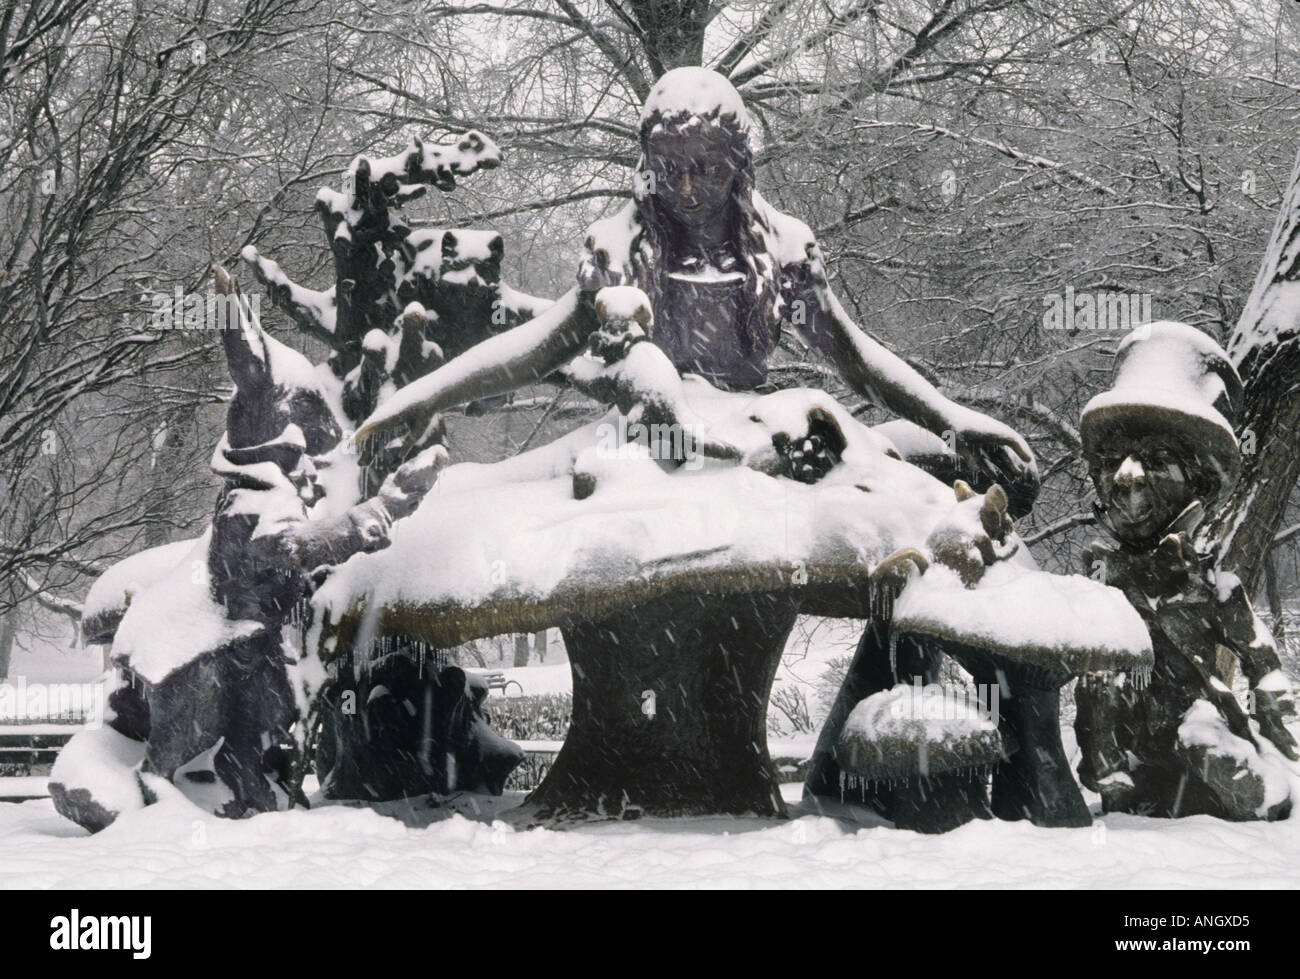 New York City Manhattan Central Park Statue of Alice in Wonderland on a Snowy Day - Stock Image